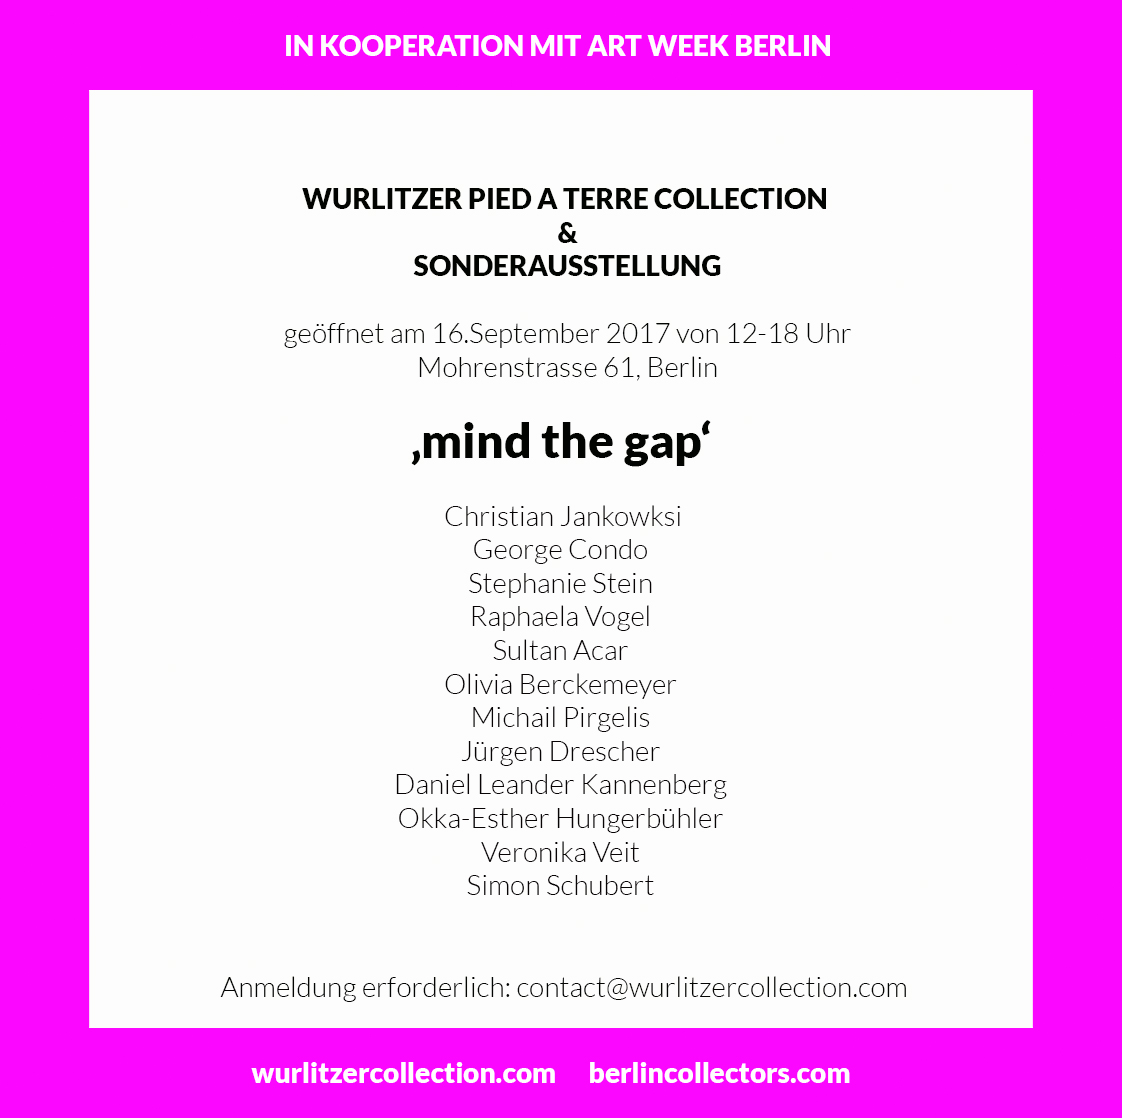 WURLITZER PIED A TERRE COLLECTION In cooperation with BERLIN ART WEEK | Open Saturday 16 September noon-6pm.